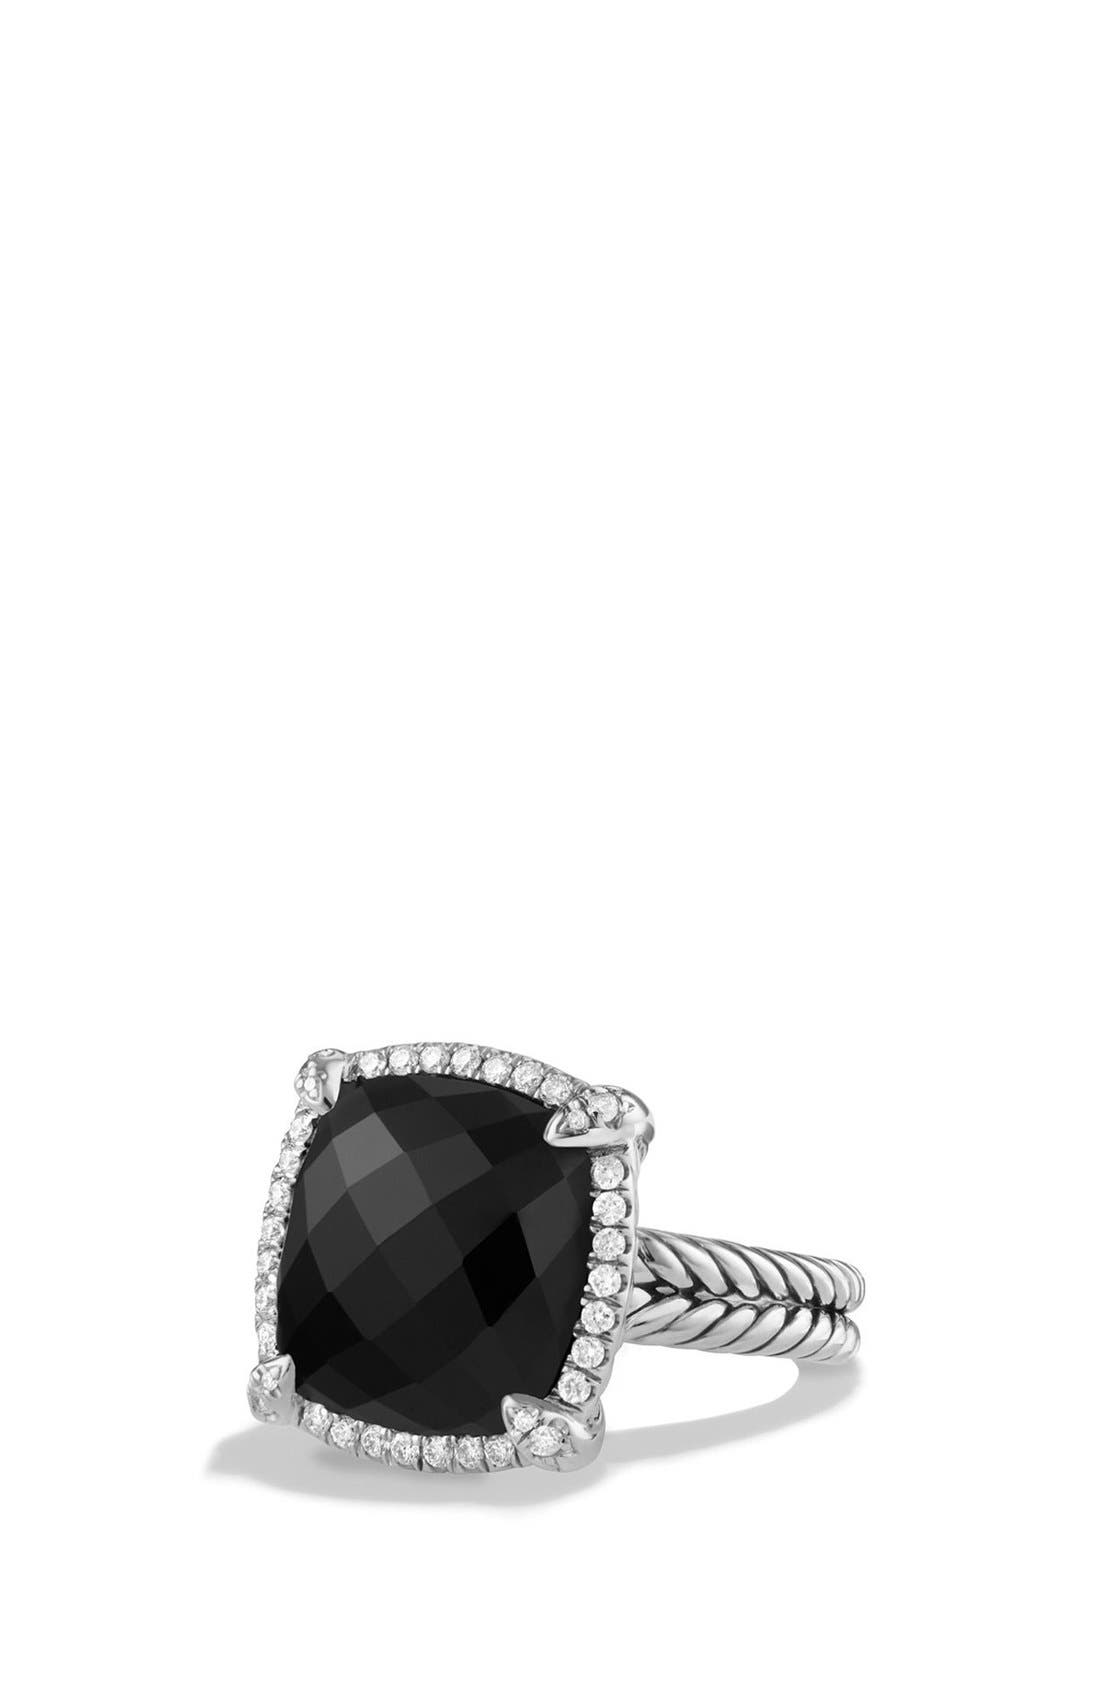 Main Image - David Yurman 'Châtelaine' Large Pavé Bezel Ring with Diamonds